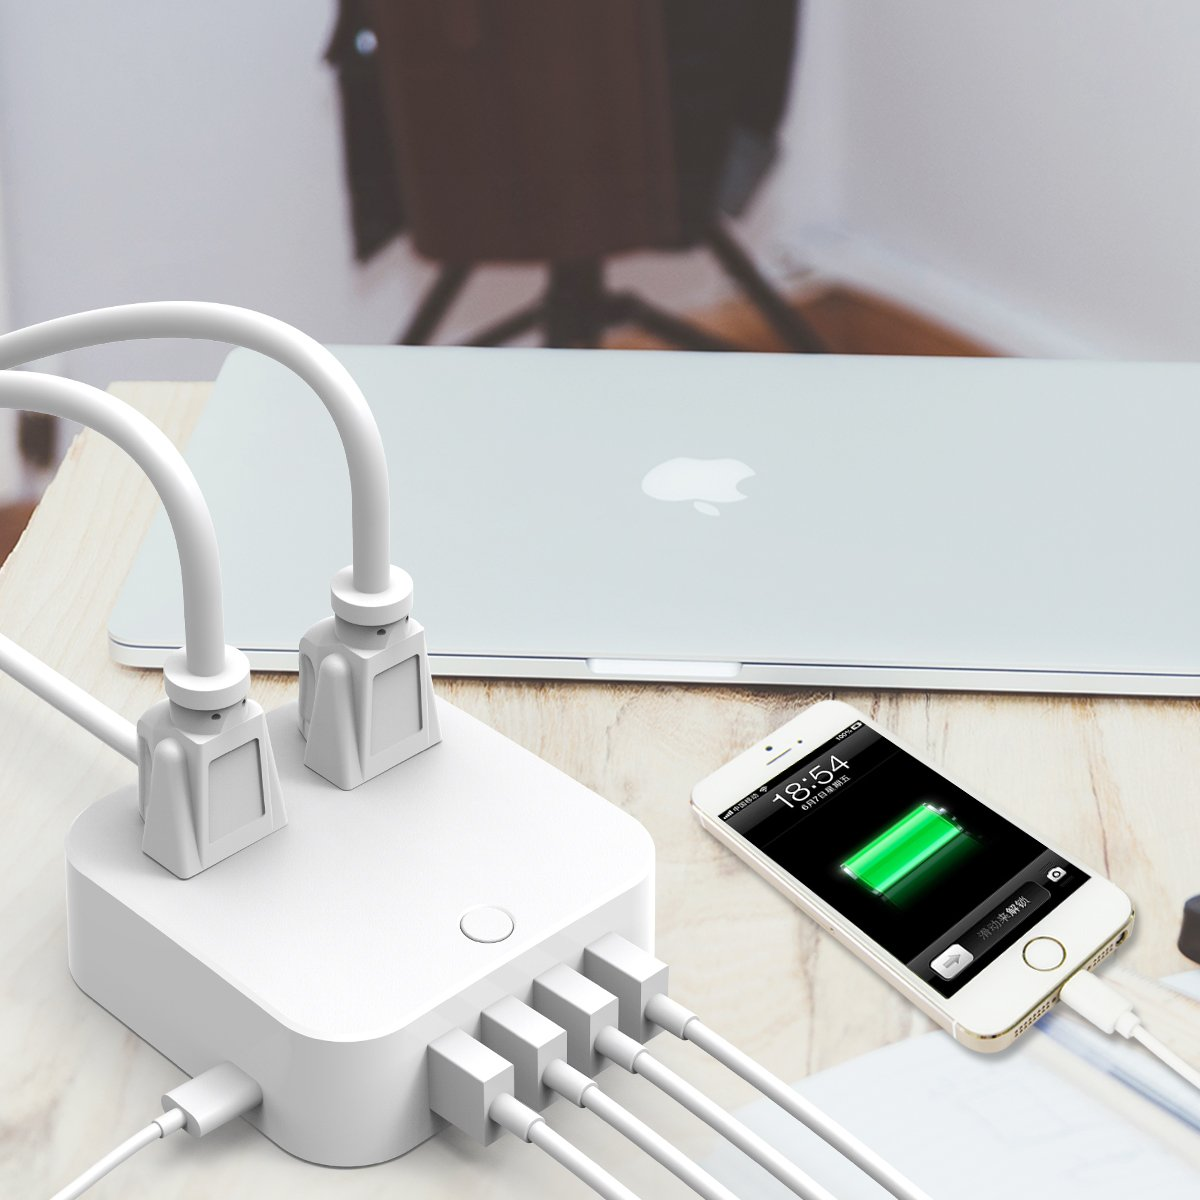 ❤ USB Extension Cord - Surge Protector Power Strip, Type-C Charging Port (5V/3A) & 4 USB Ports (5V/2.4A), Portable Travel Charger Station for iPhone iPad Samsung & Tablets, USB C Not for Laptops by HITRENDS (Image #7)